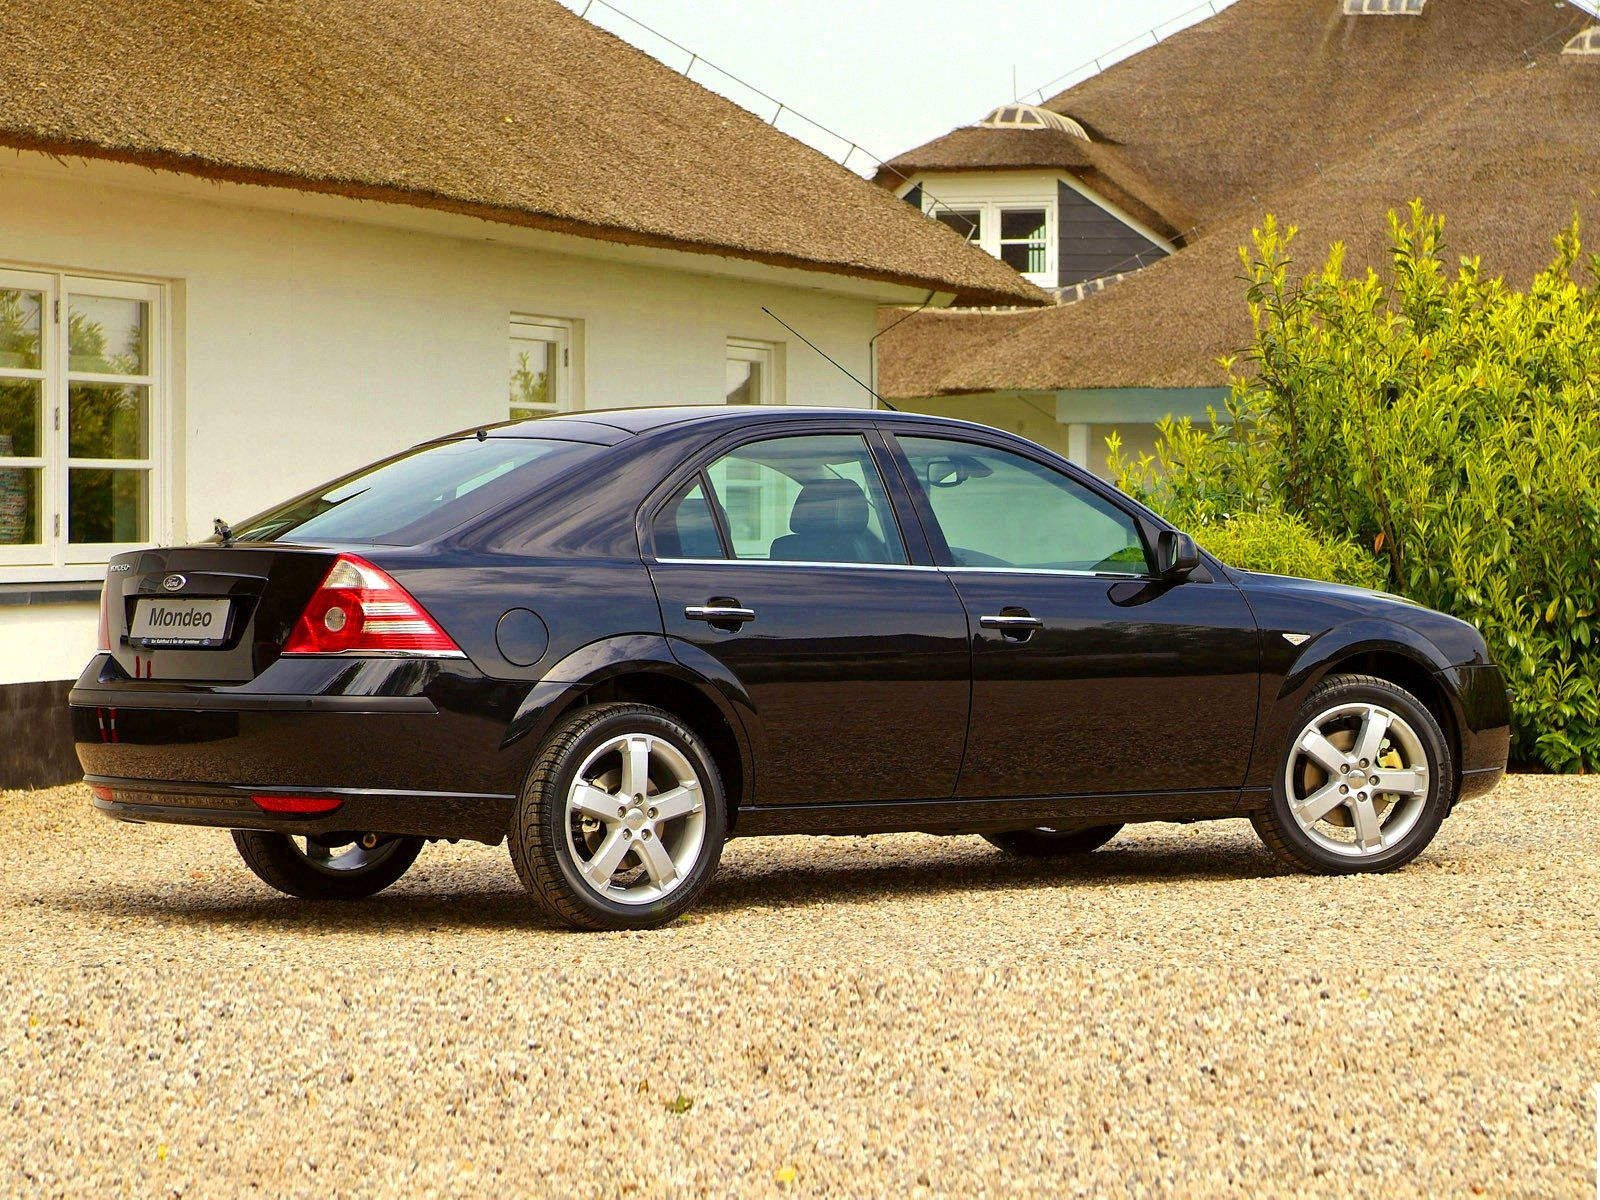 Фото автомобиля Ford Mondeo III Hatchback.